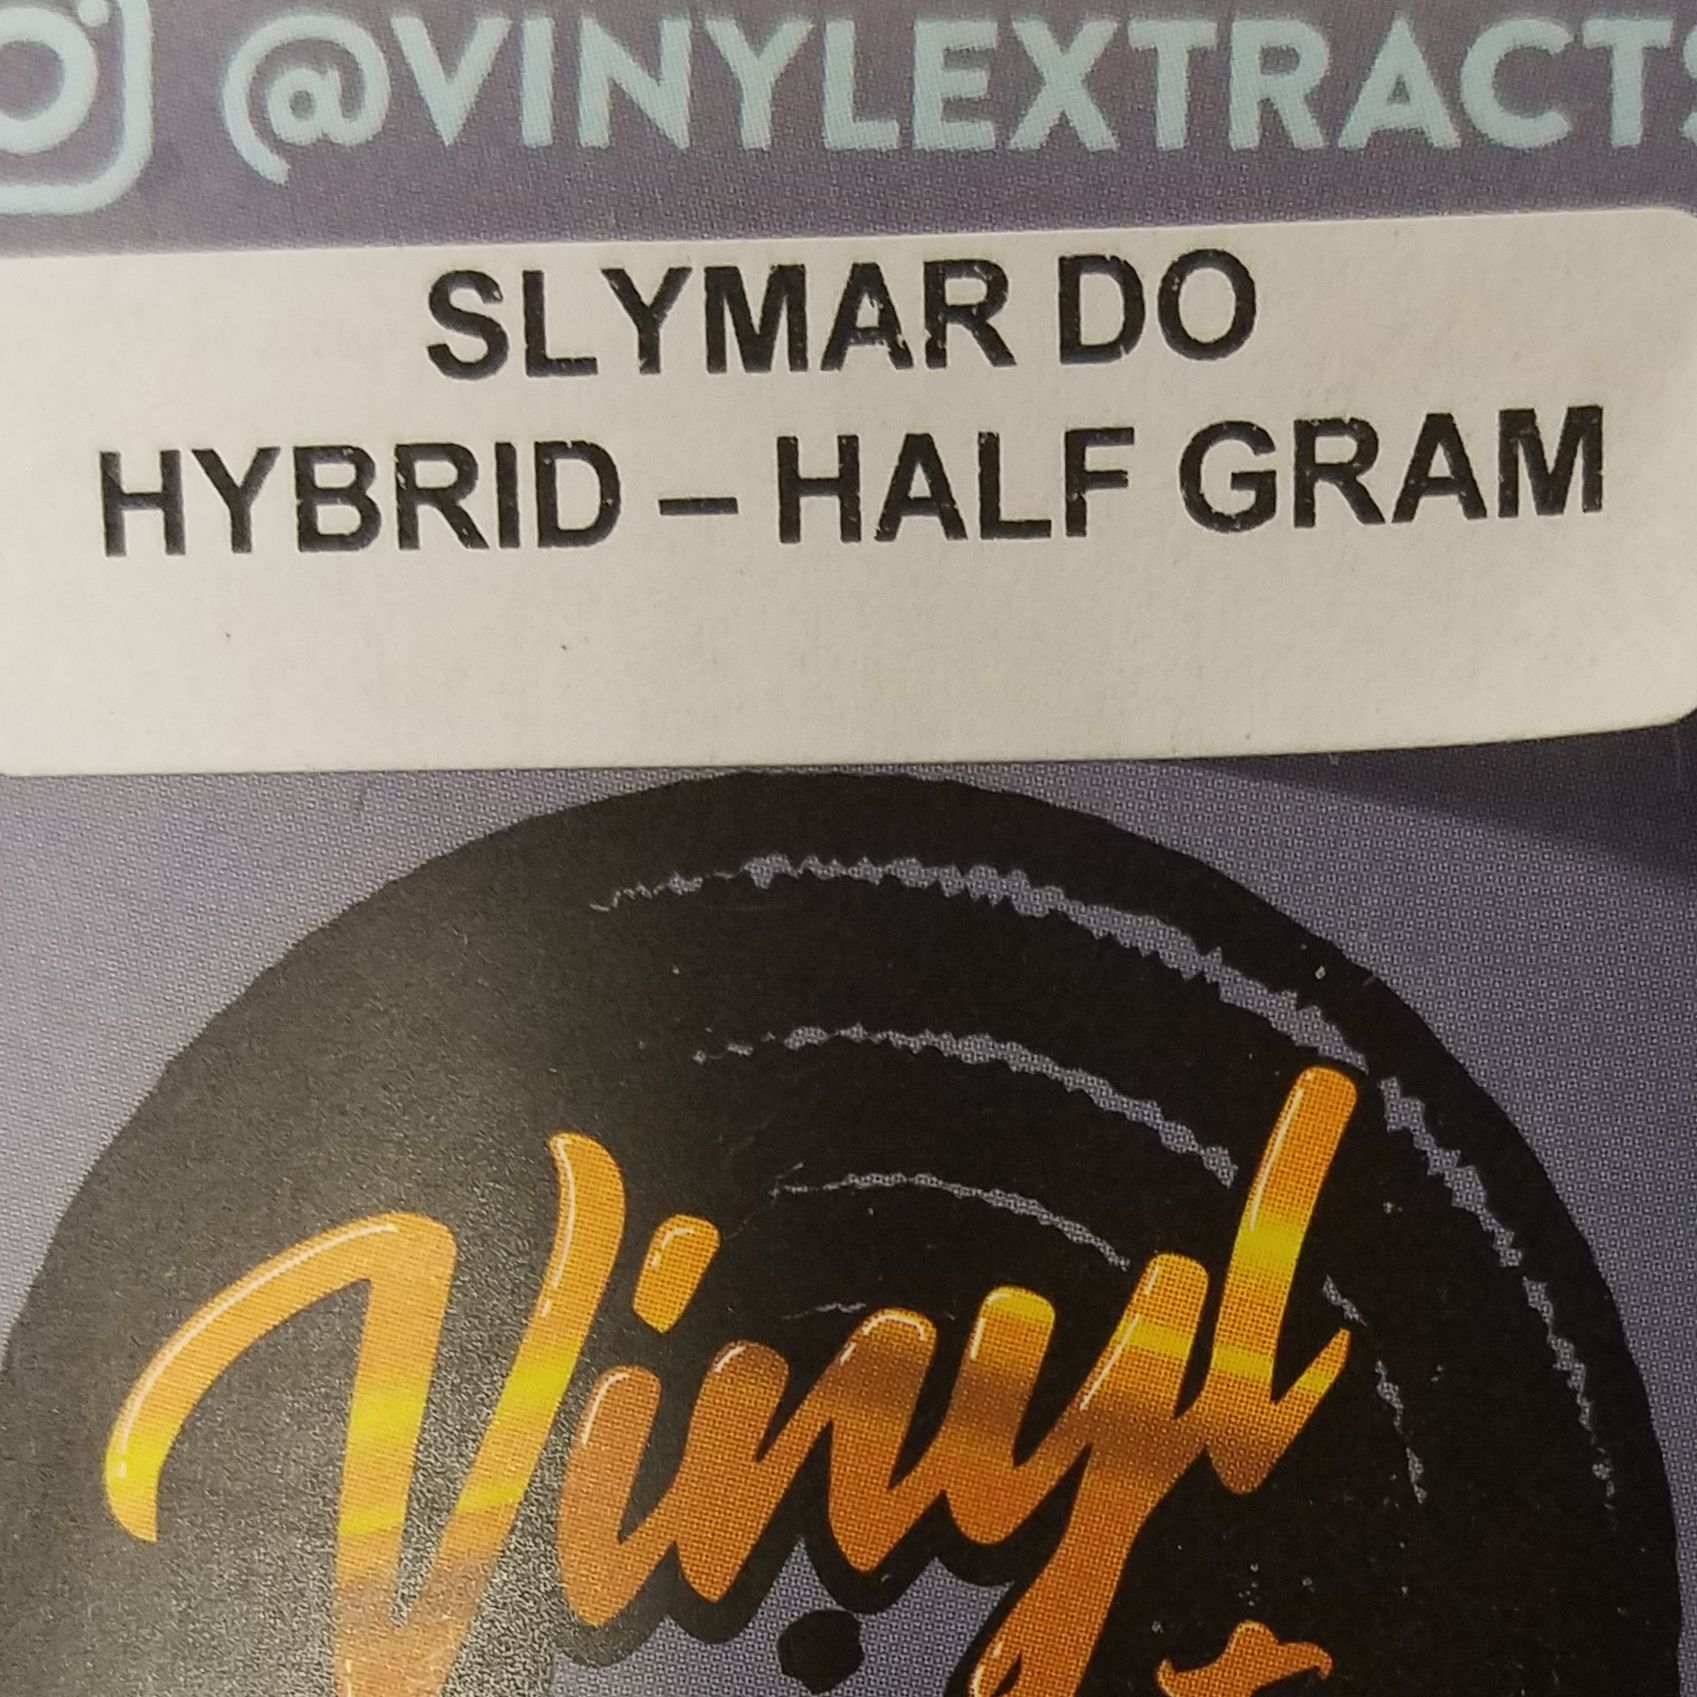 Vinyl Extracts-Slymar Do .5g Shatter (H)